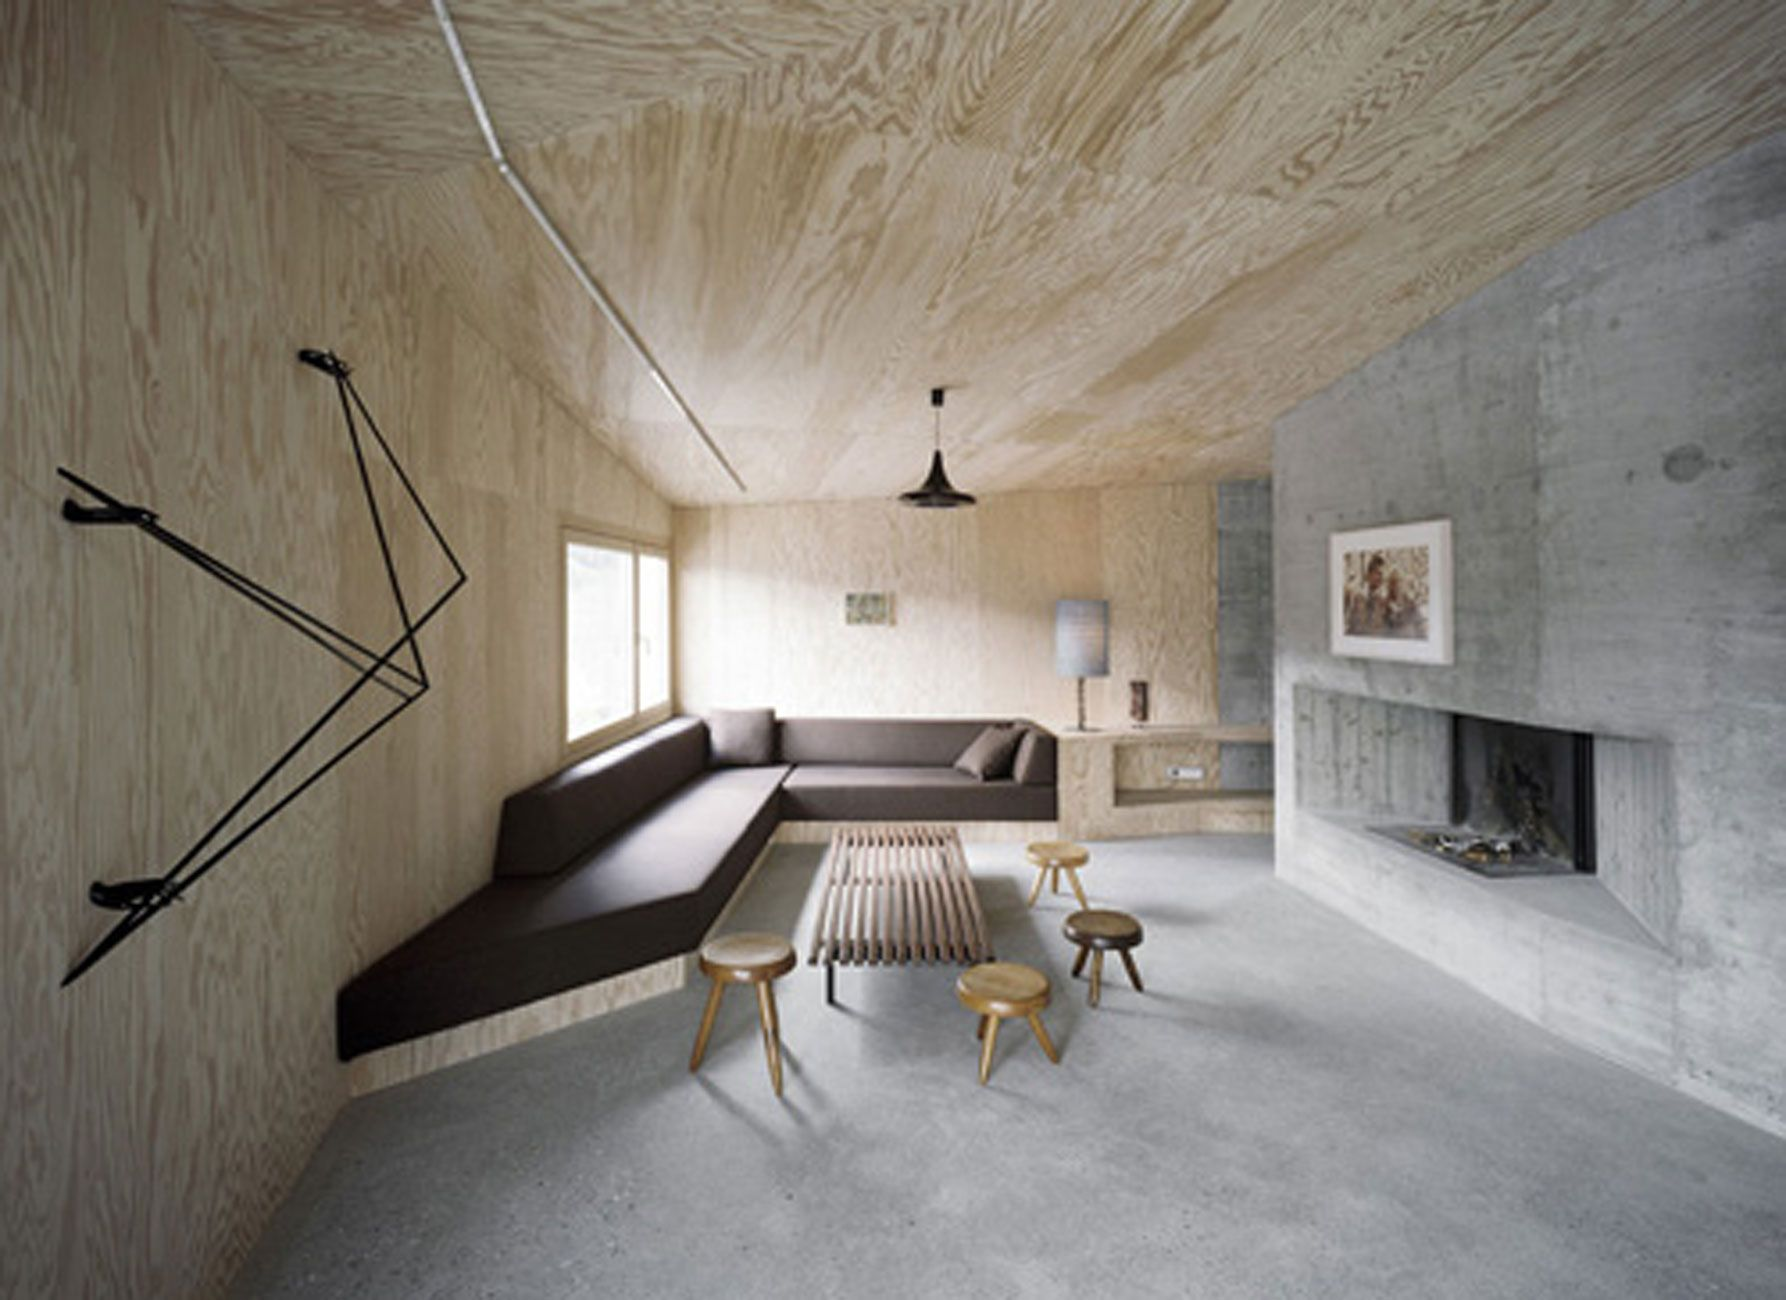 Solid concrete house architecture and minimalist interior for Minimalist house interior